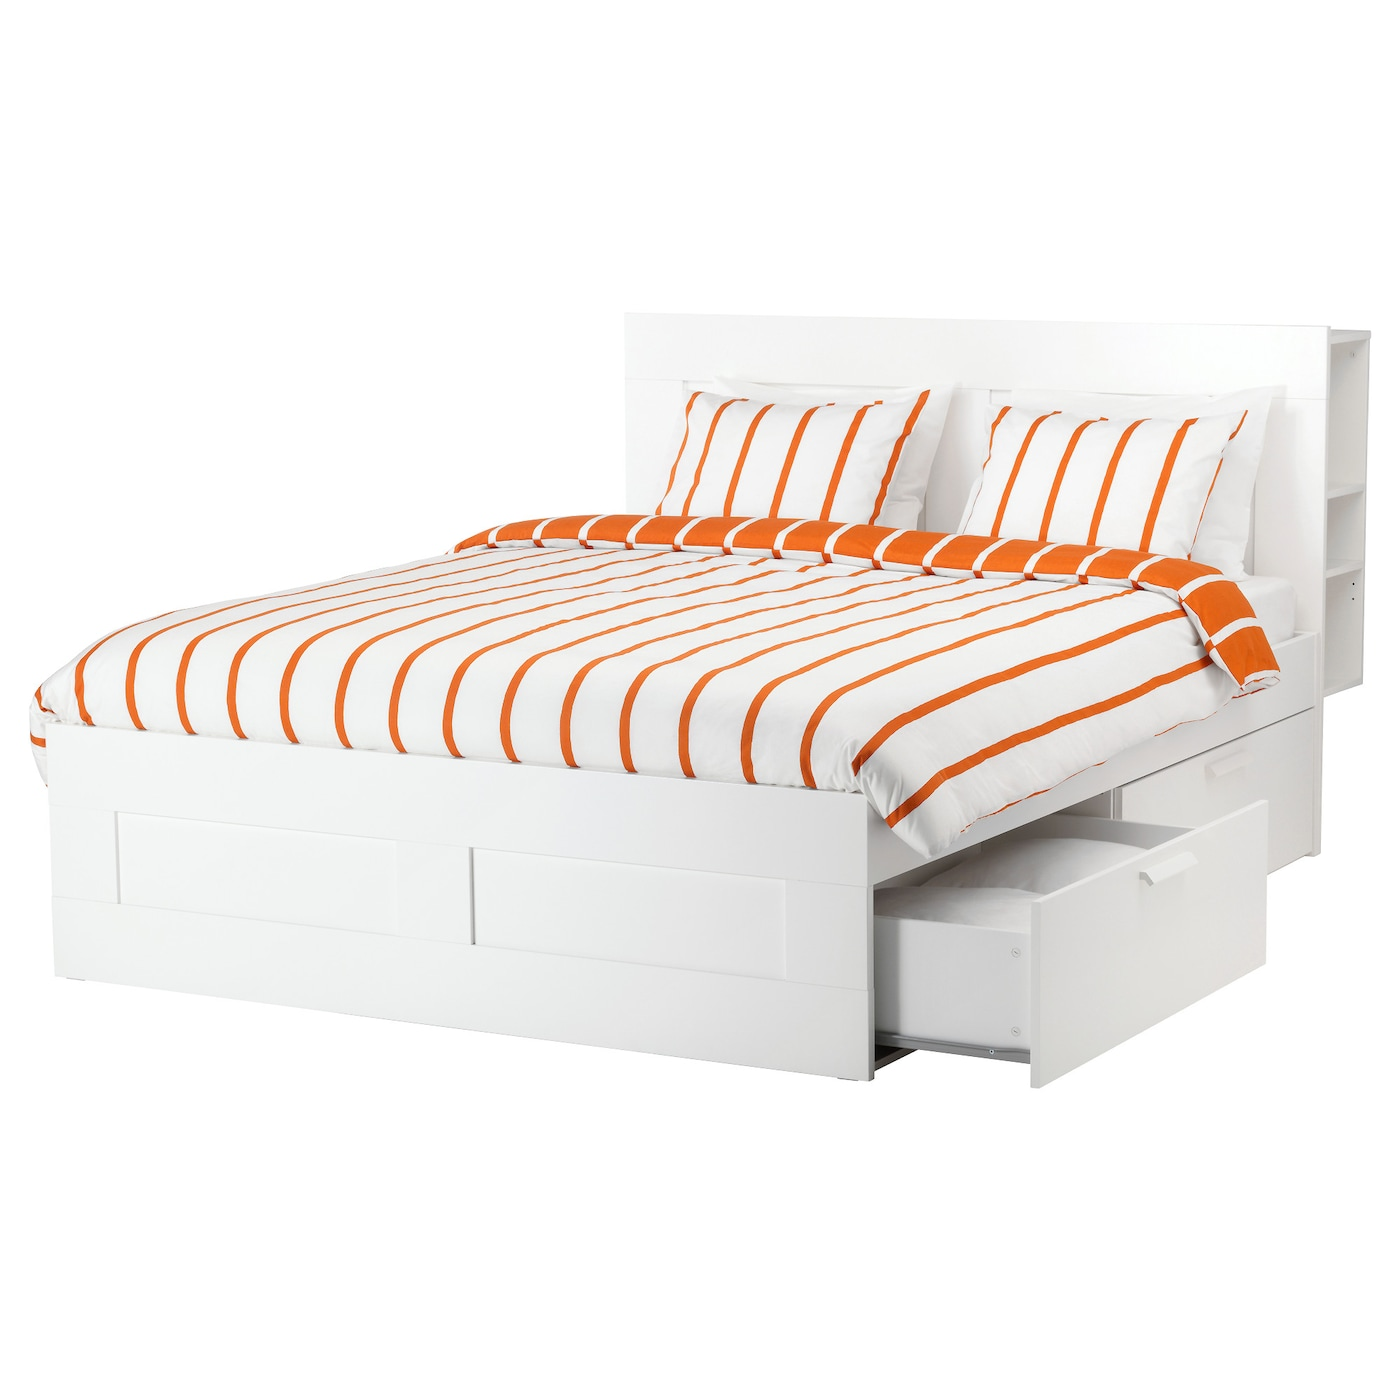 BRIMNES Bed frame w storage and headboard White luröy Standard King